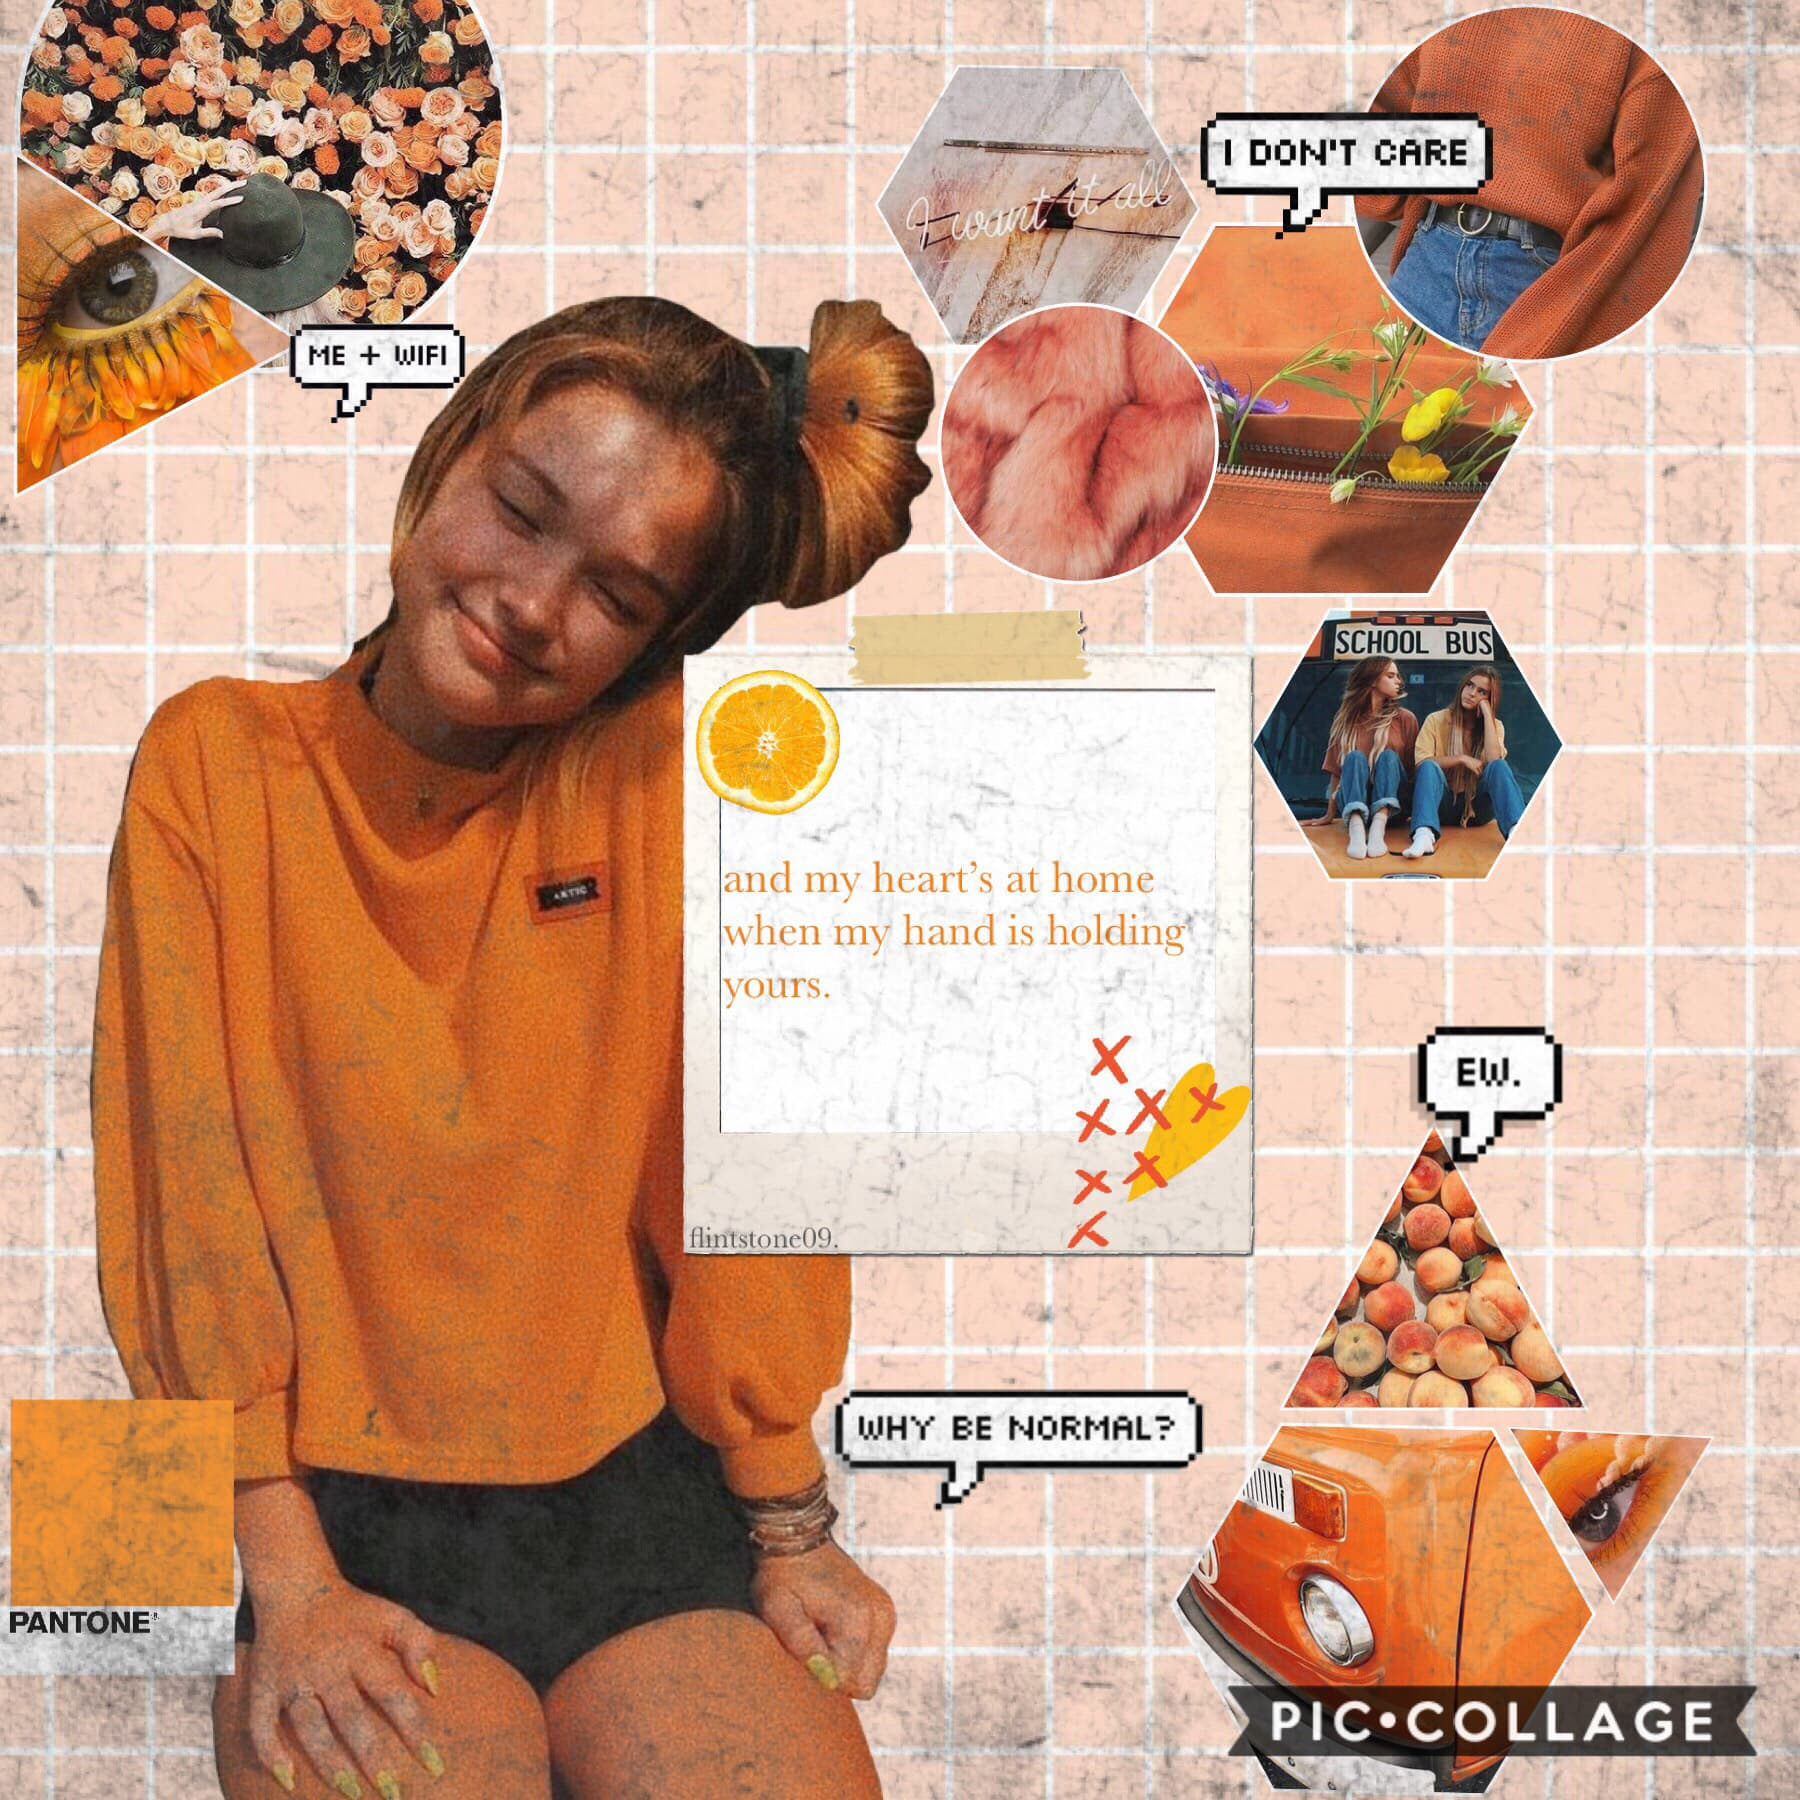 5th post of theme. 🍊TAP🍊  My FAV AHHH😁so aesthetic😊 ORANGE  QOTD: Braids or topknots? (or buns or whatever<) AOTD: Braids, cuz I kinda suck when it comes to updos😅💩